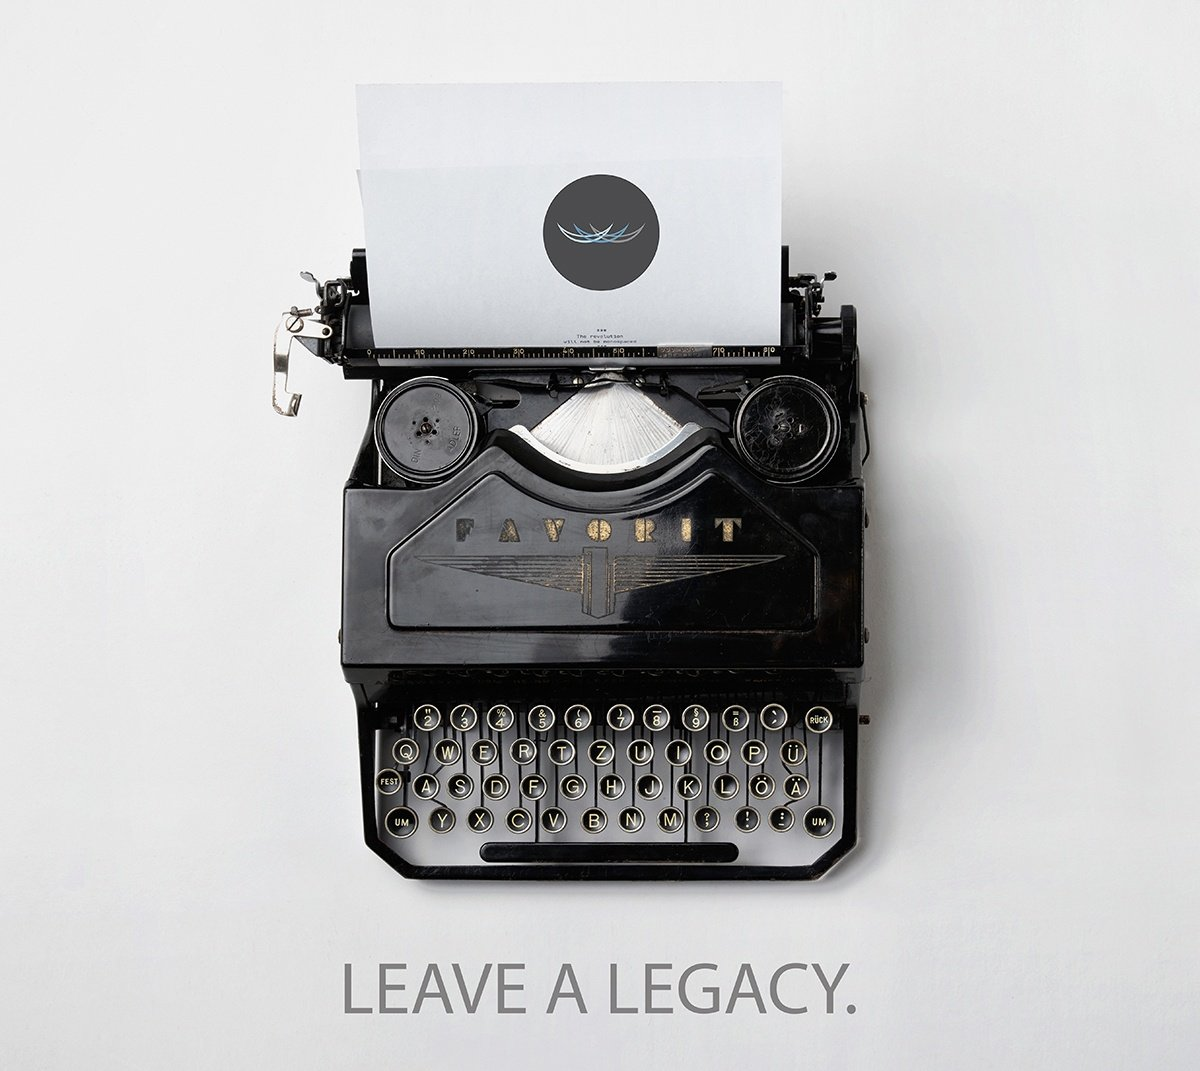 Leave a legacy - refer a friend to Six Month Smiles